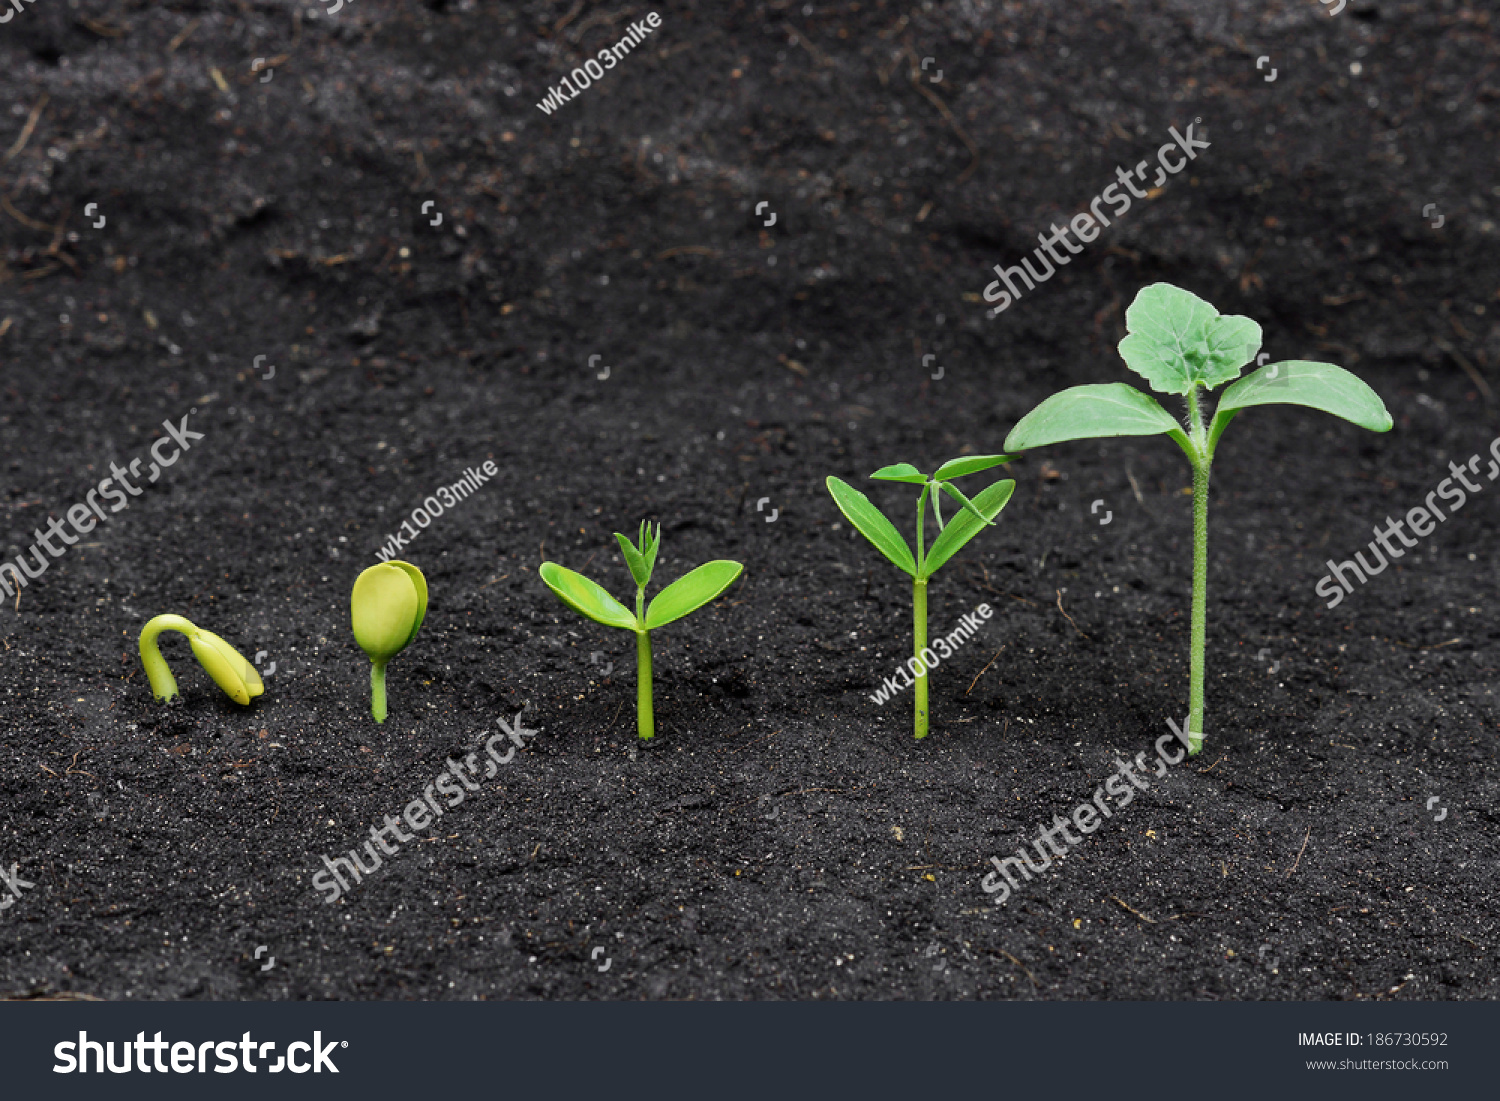 Sequence Seed Germination On Soil Evolution Stock Photo